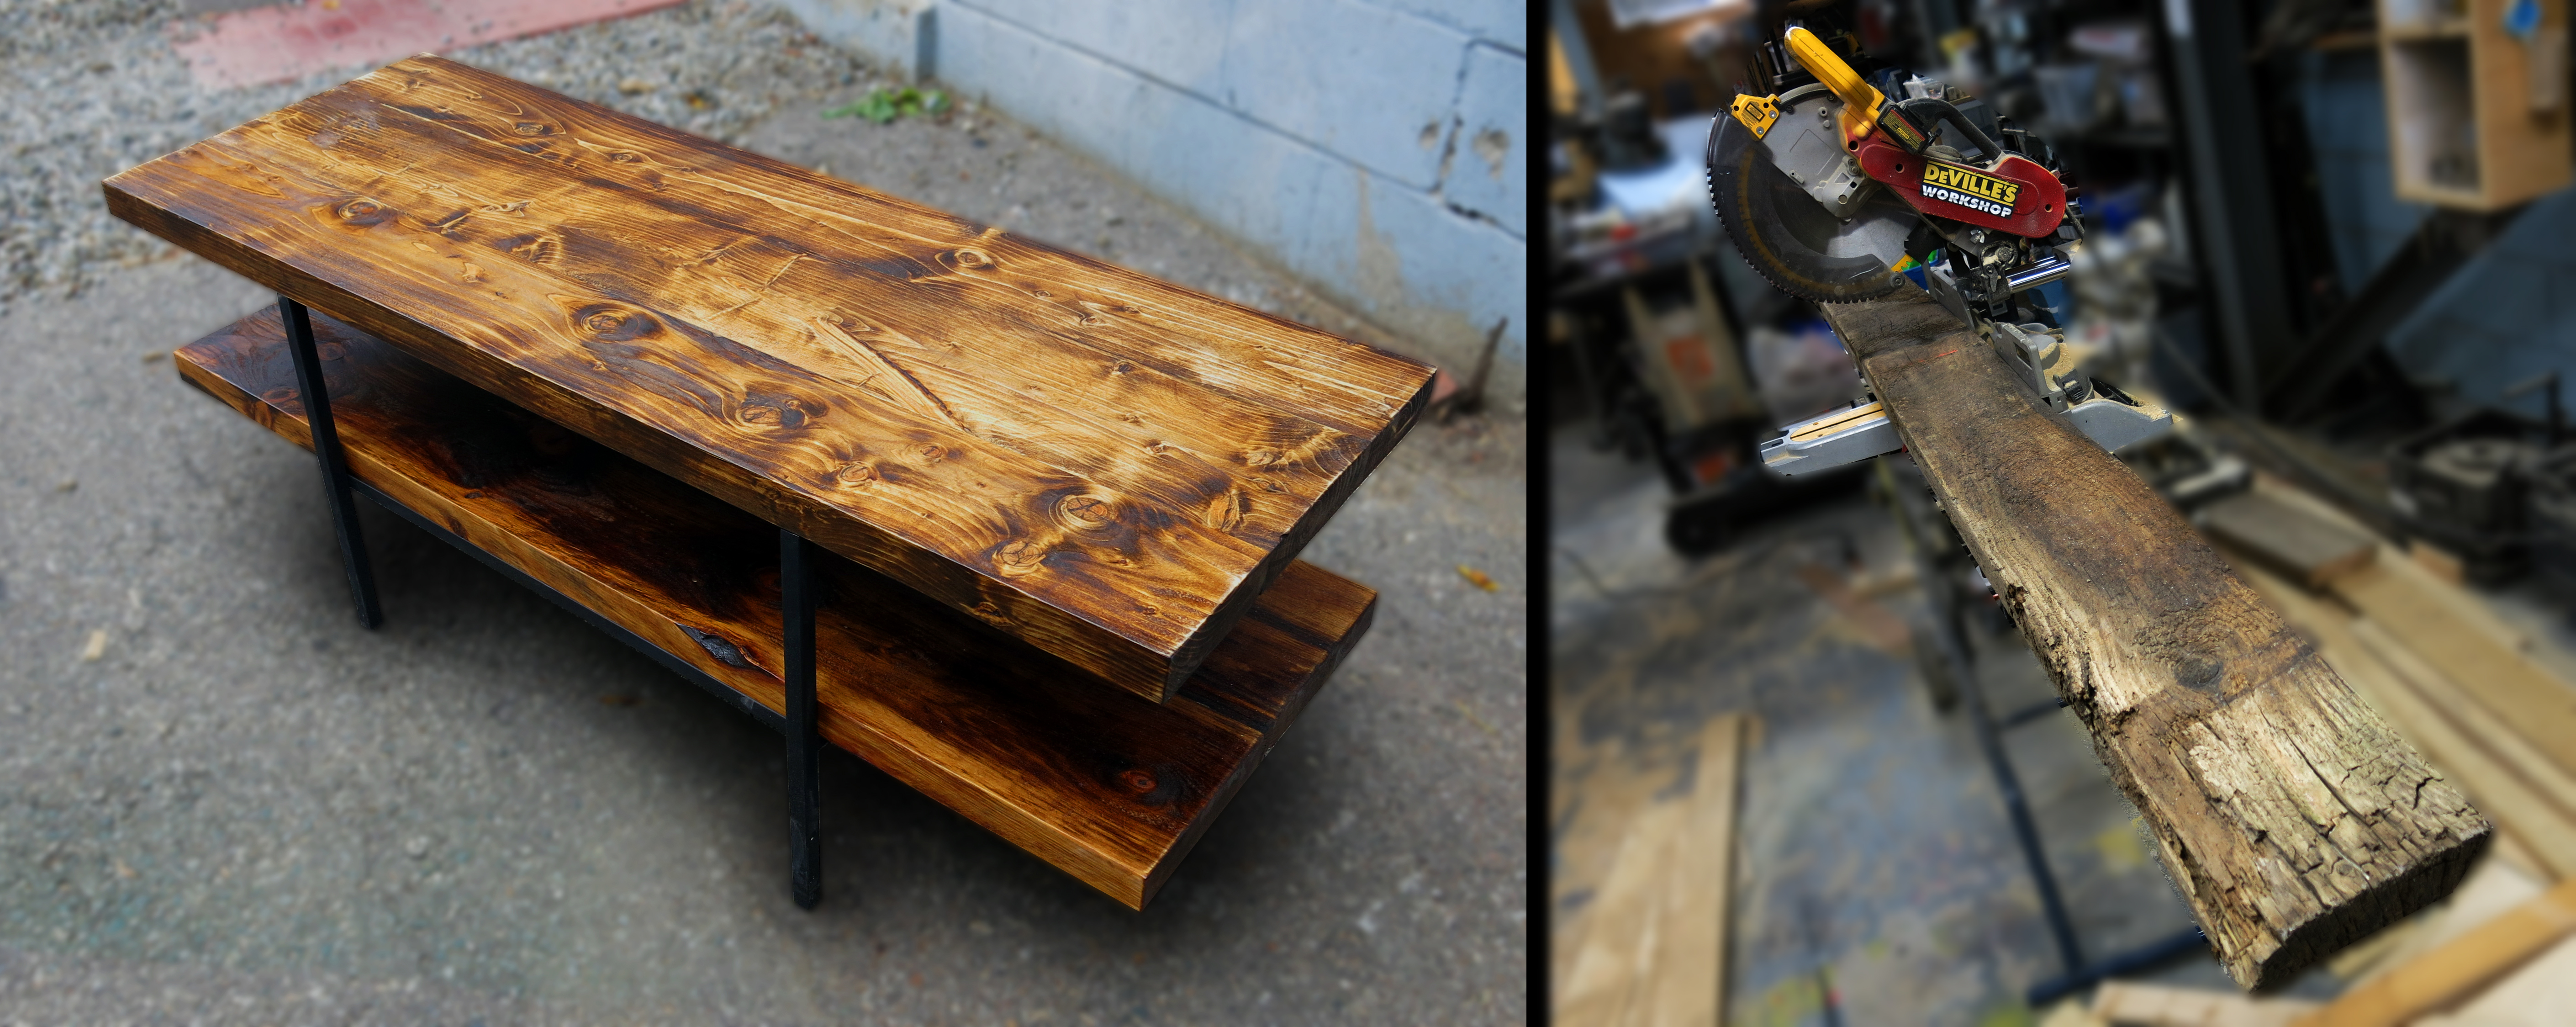 Build a table from old barn board